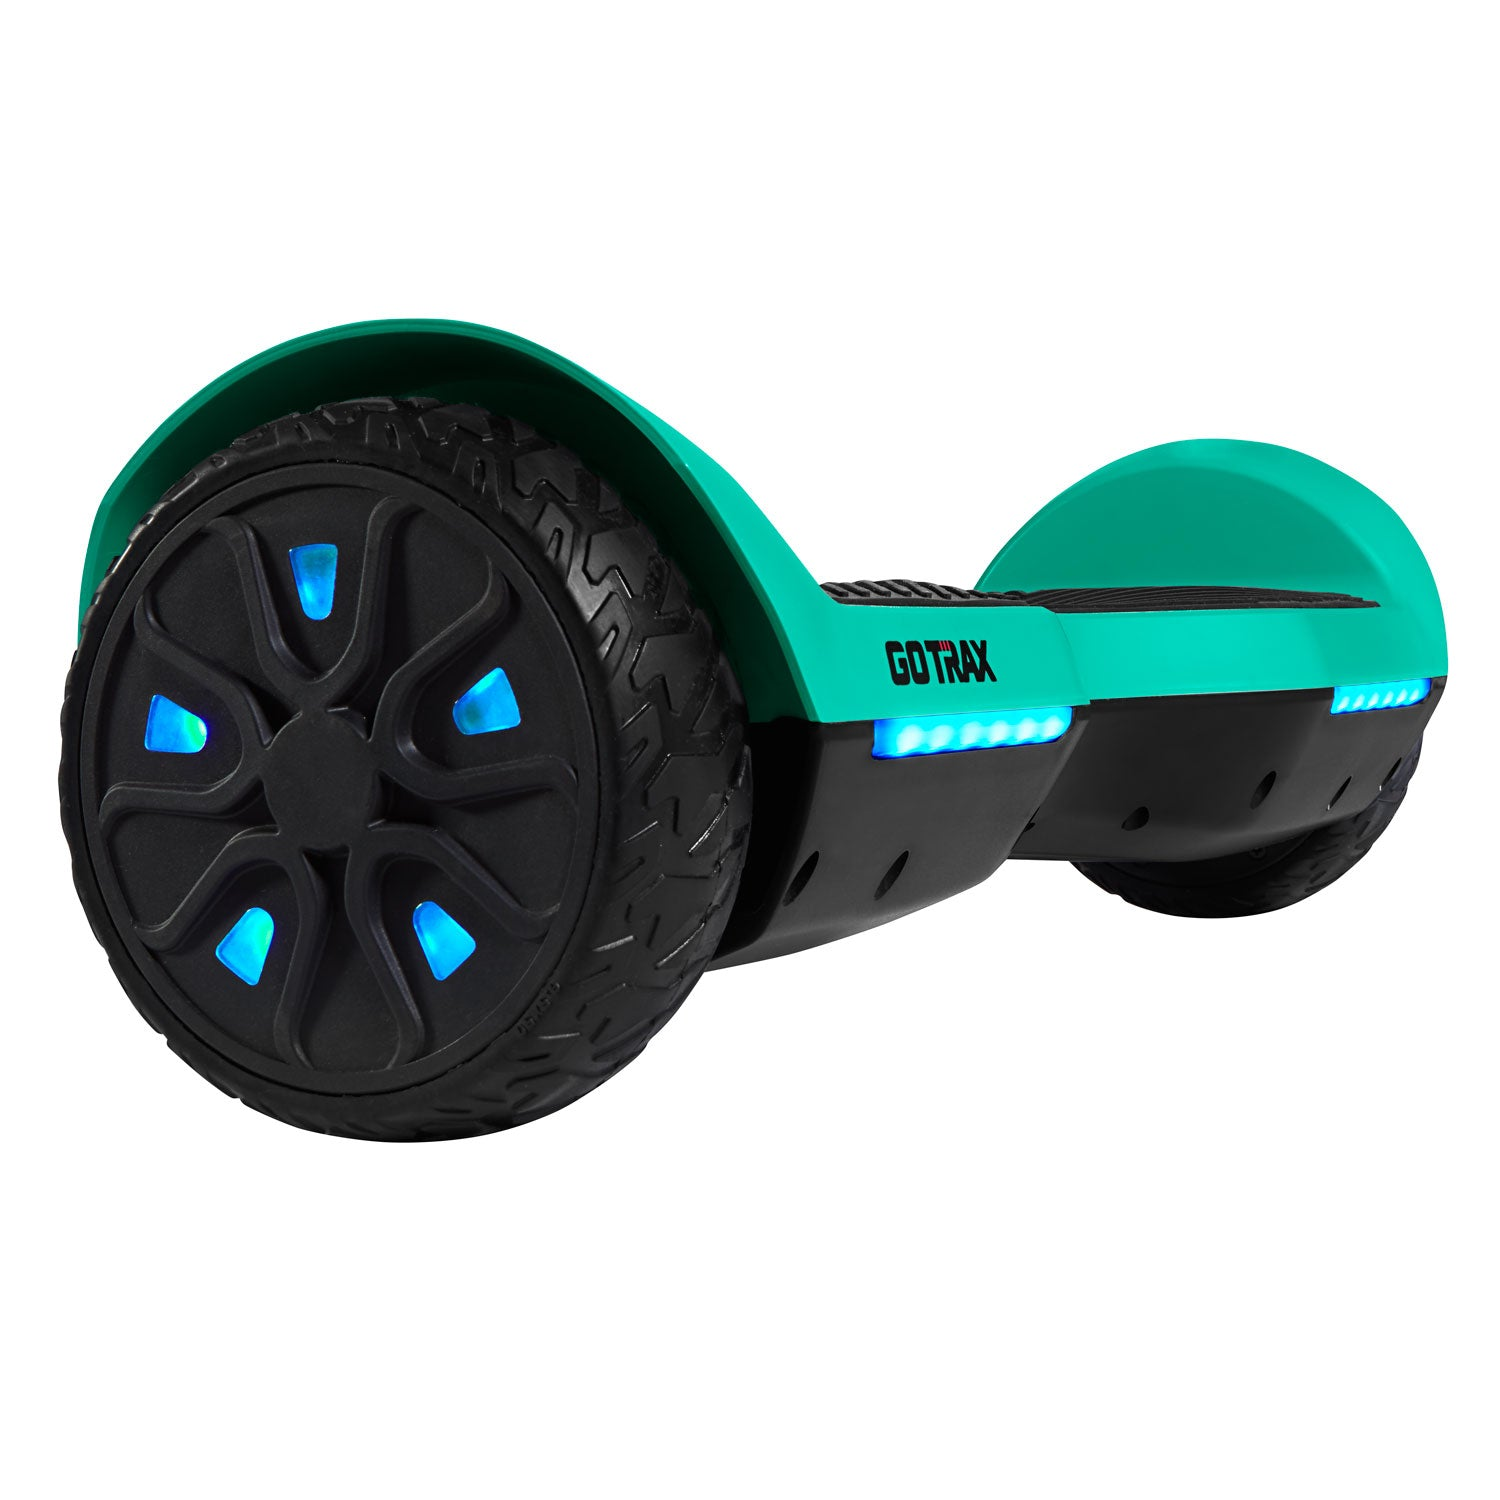 teal srx a6 bluetooth hoverboard Main image